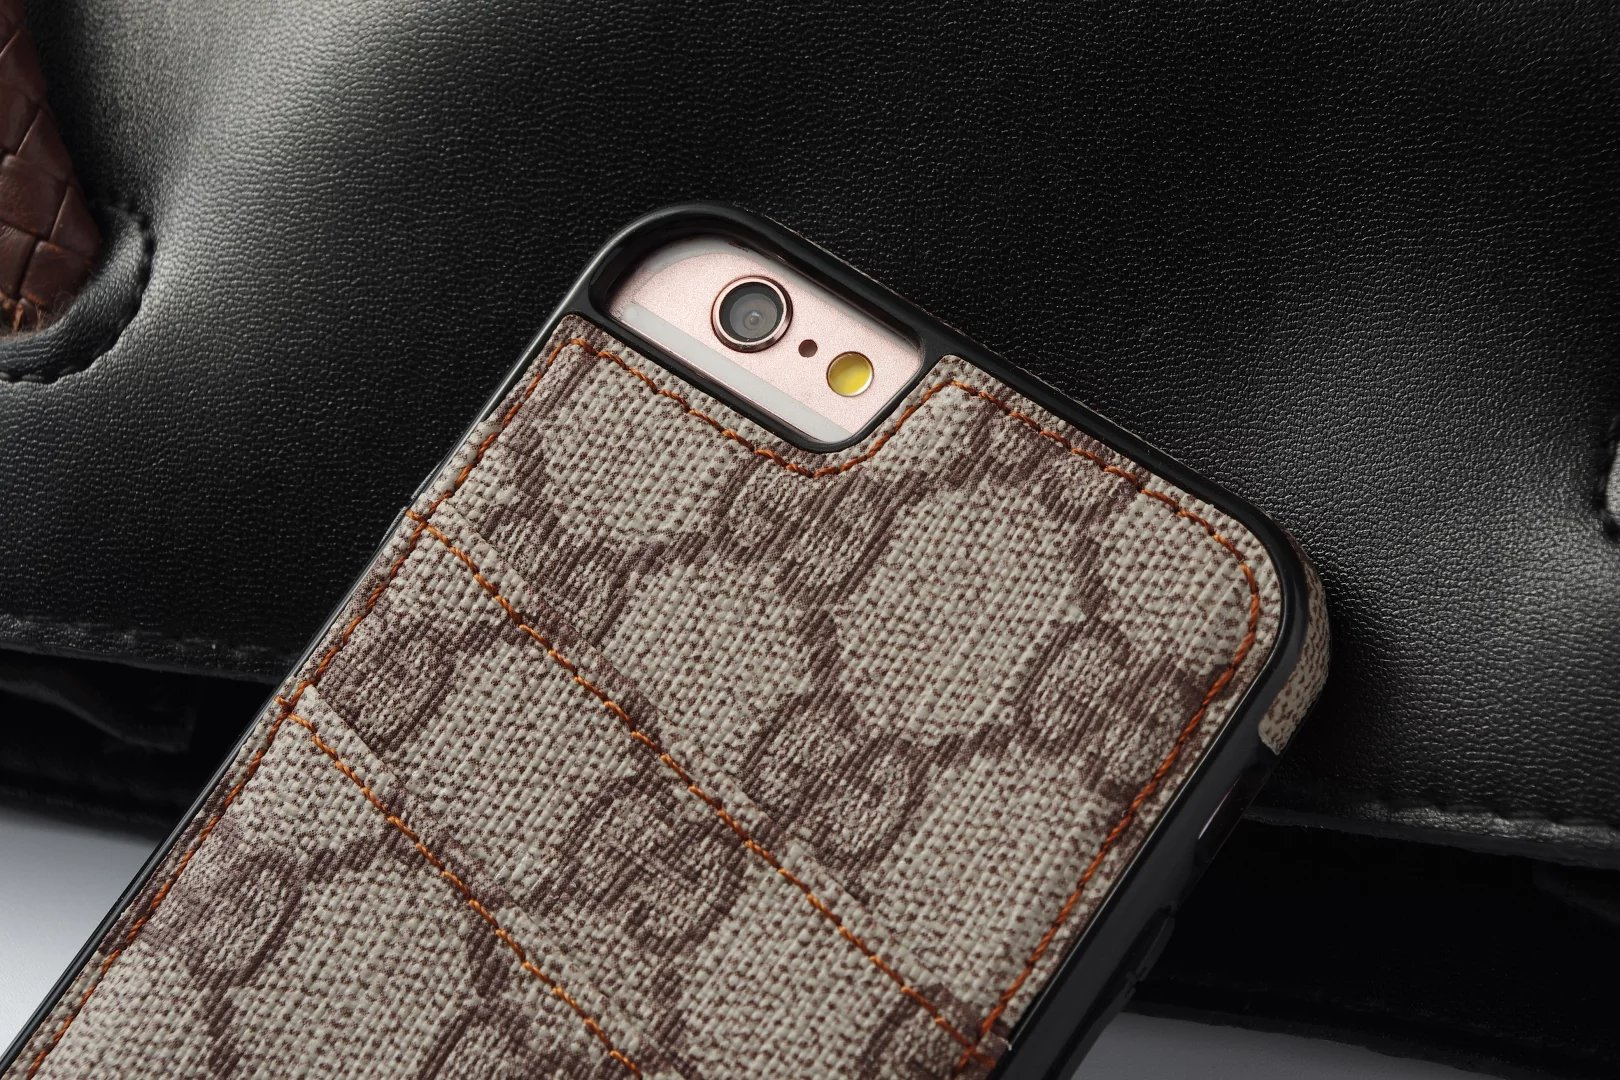 good iphone 6 Plus cases design an iphone 6 Plus case fashion iphone6 plus case cover of phone best iphone 6 cases for women mophie battery case for iphone 6 iphone 6 best covers iphone 6 cases for women designer leather iphone case